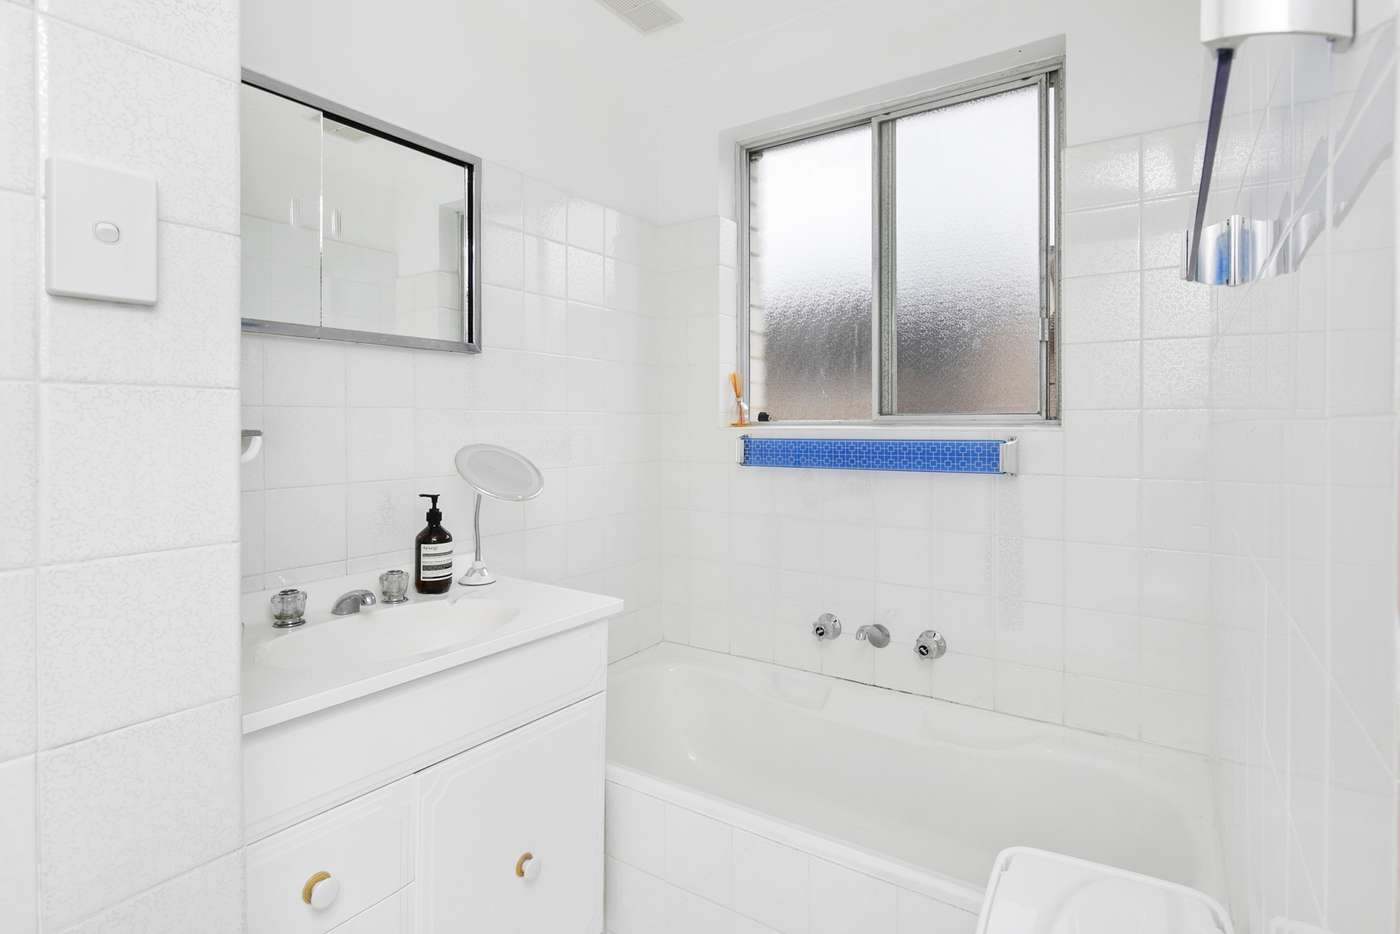 Sixth view of Homely unit listing, 3/26 Richmond Avenue, Dee Why NSW 2099